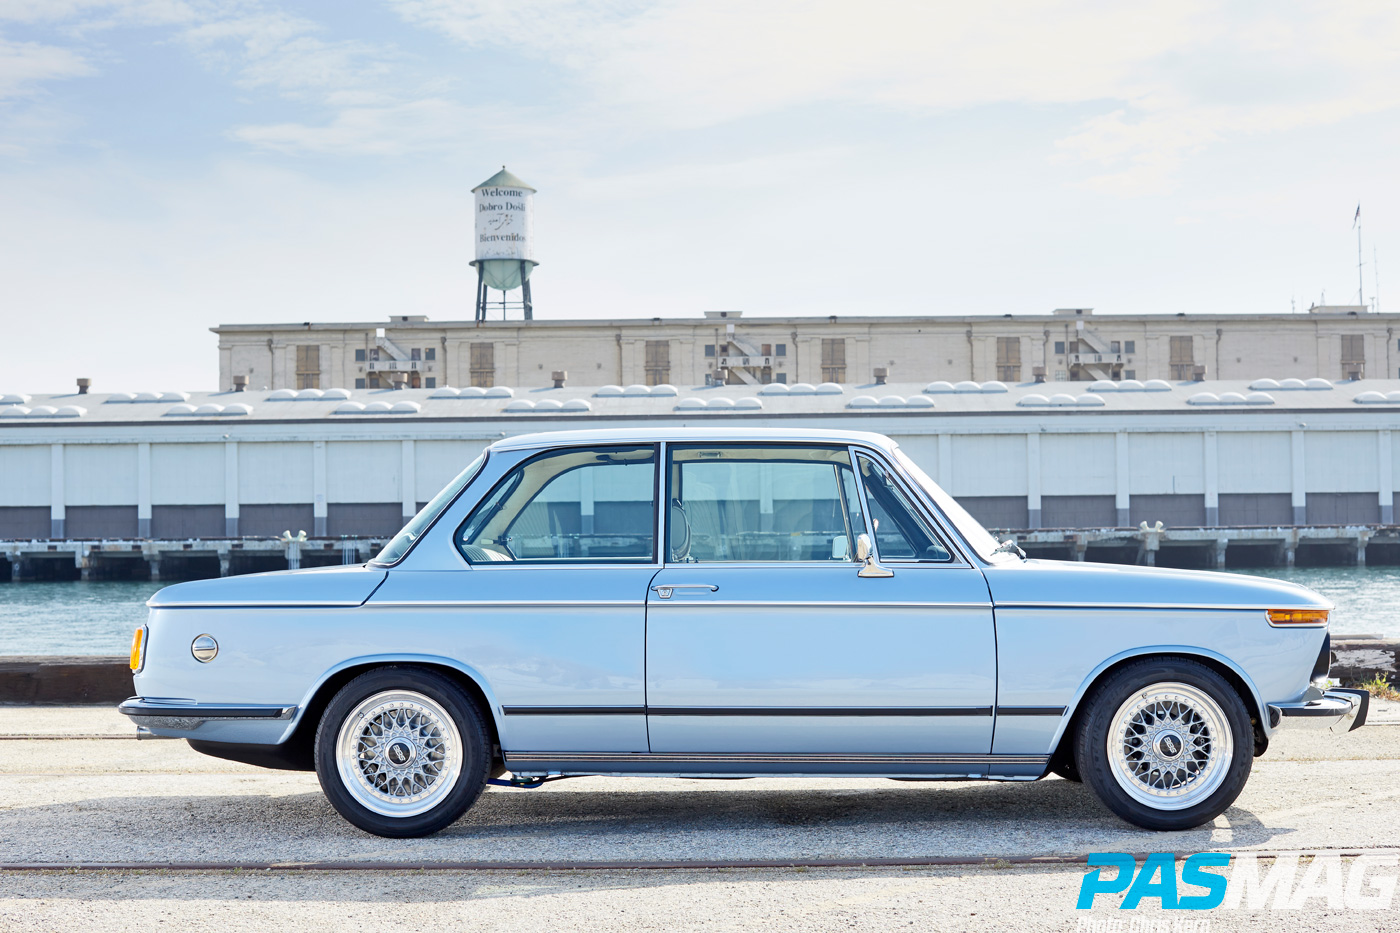 Aught Two: Clarion Builds' Iconic Restoration - 1974 BMW 2002 (Photo by Chris Kern)